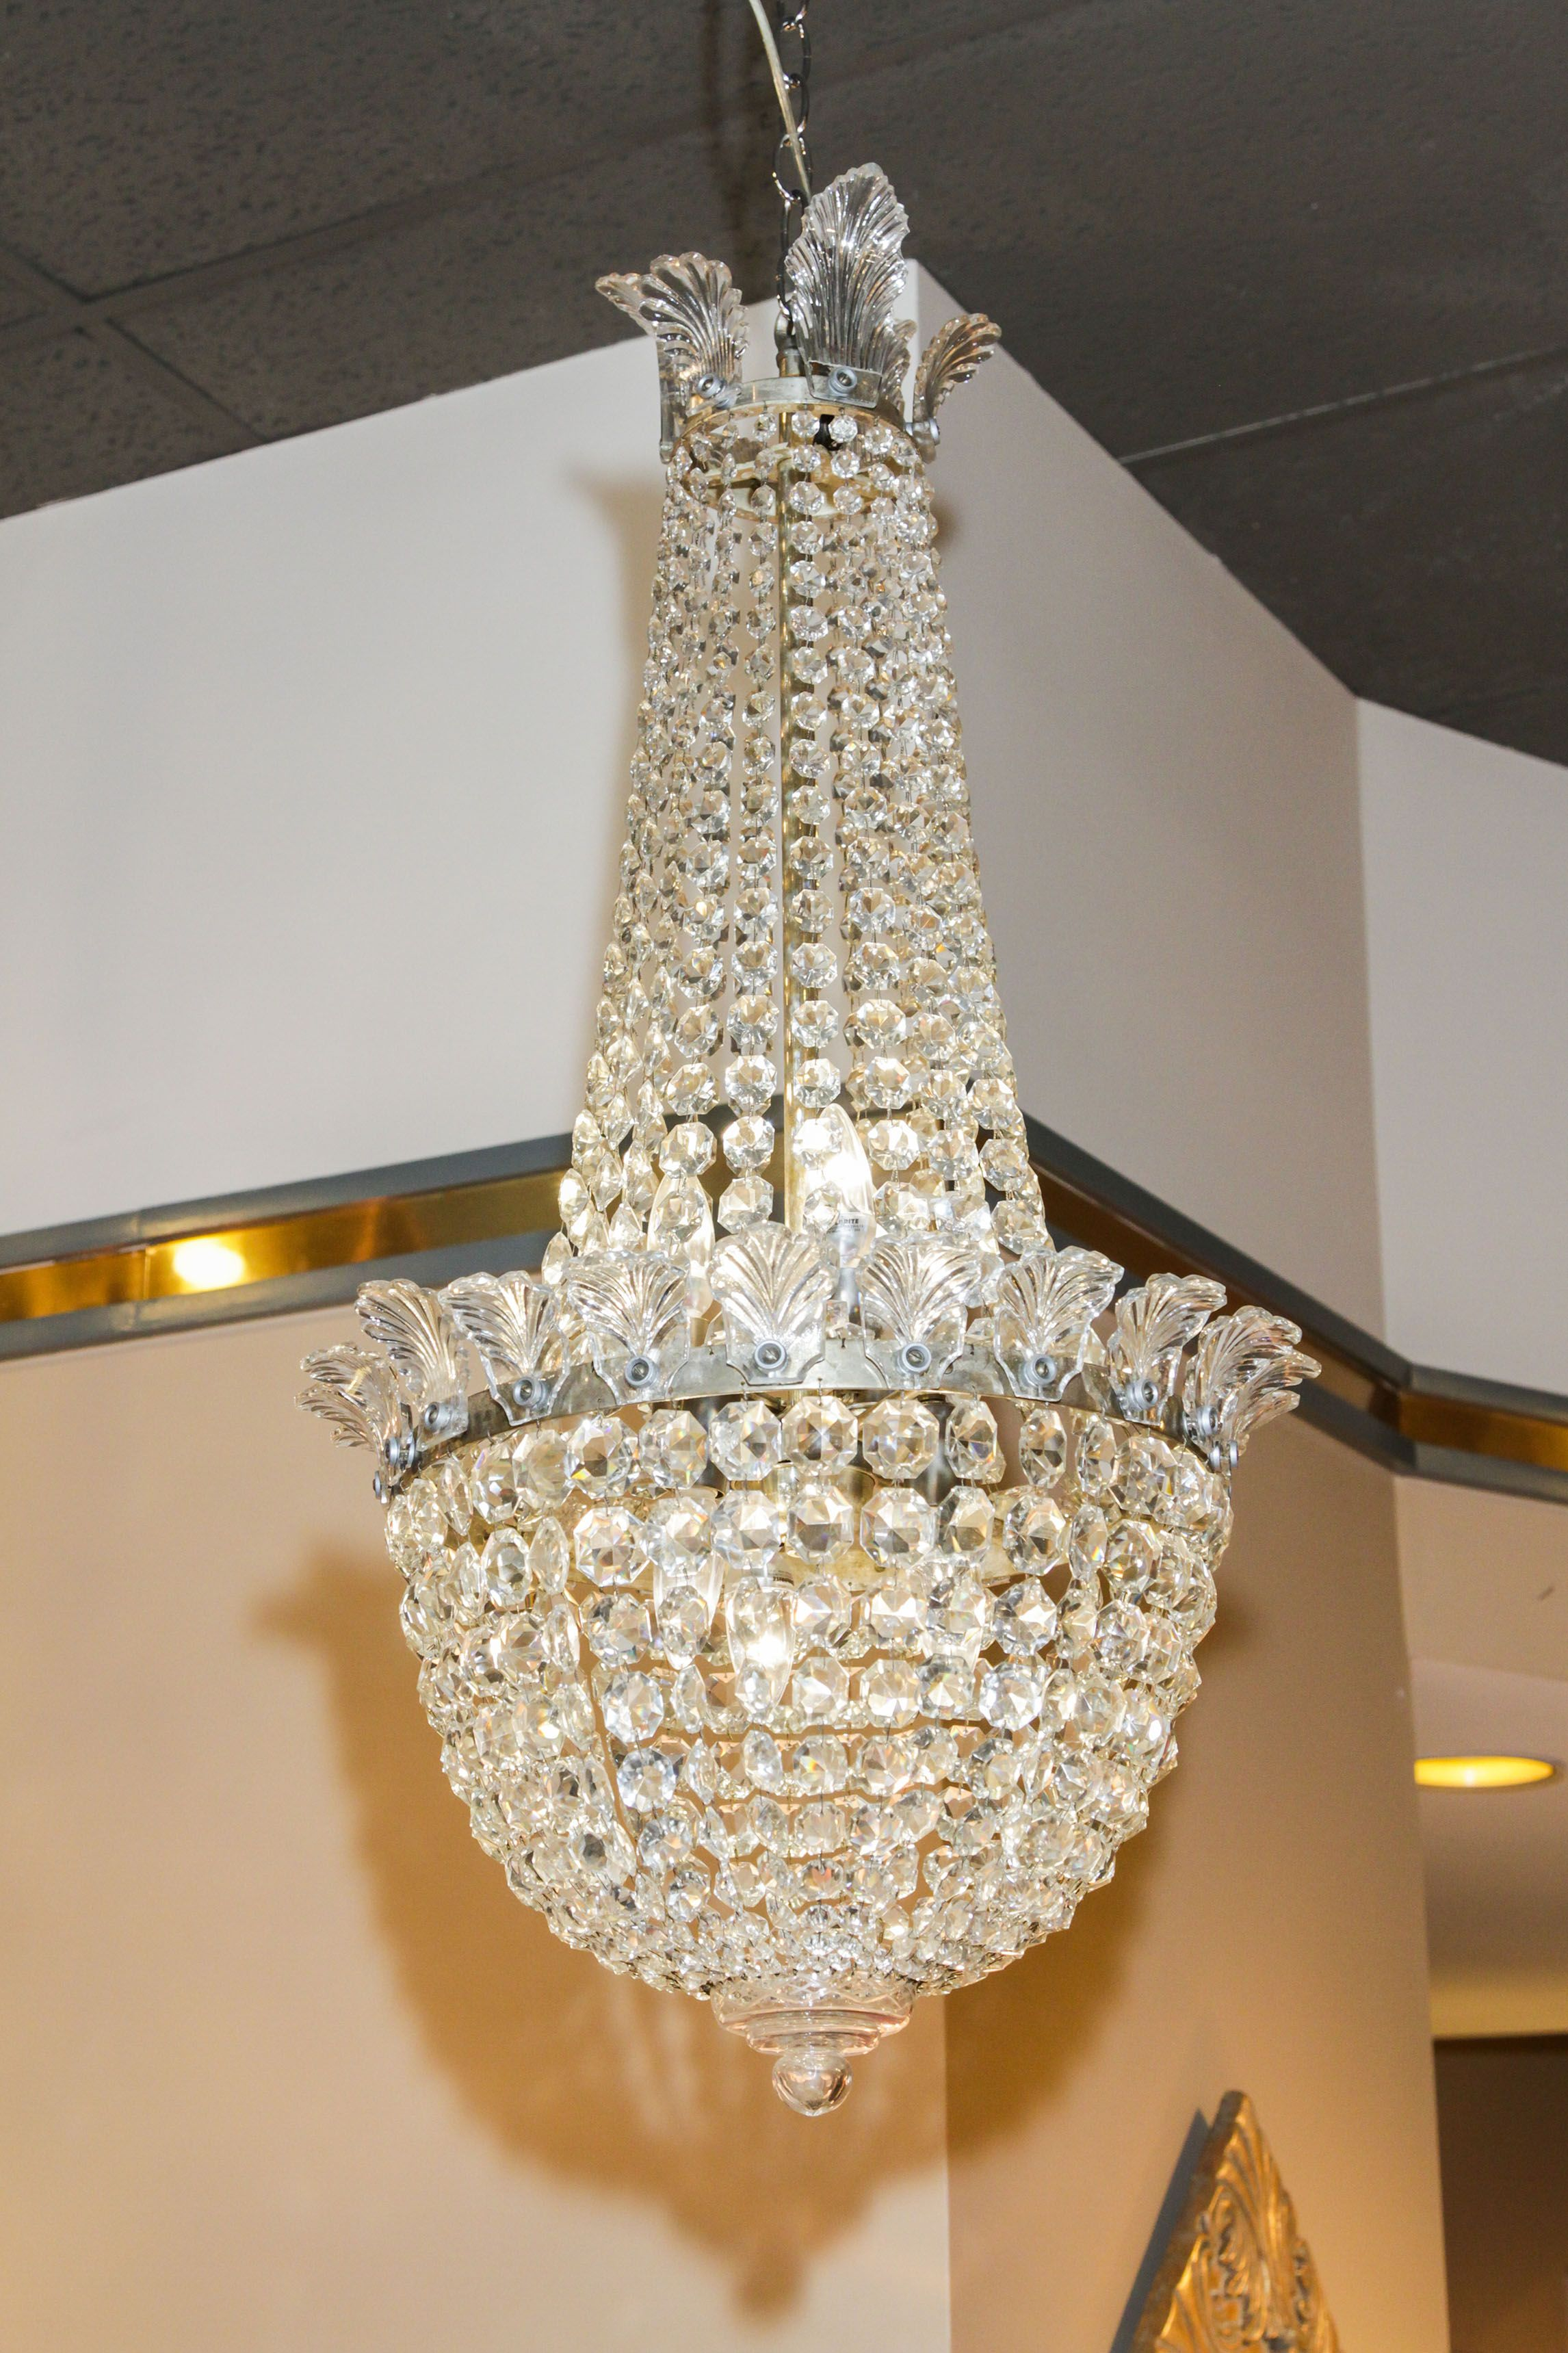 lighting treasures. Find This Pin And More On Lighting By HoustonDesignCr. Treasures E